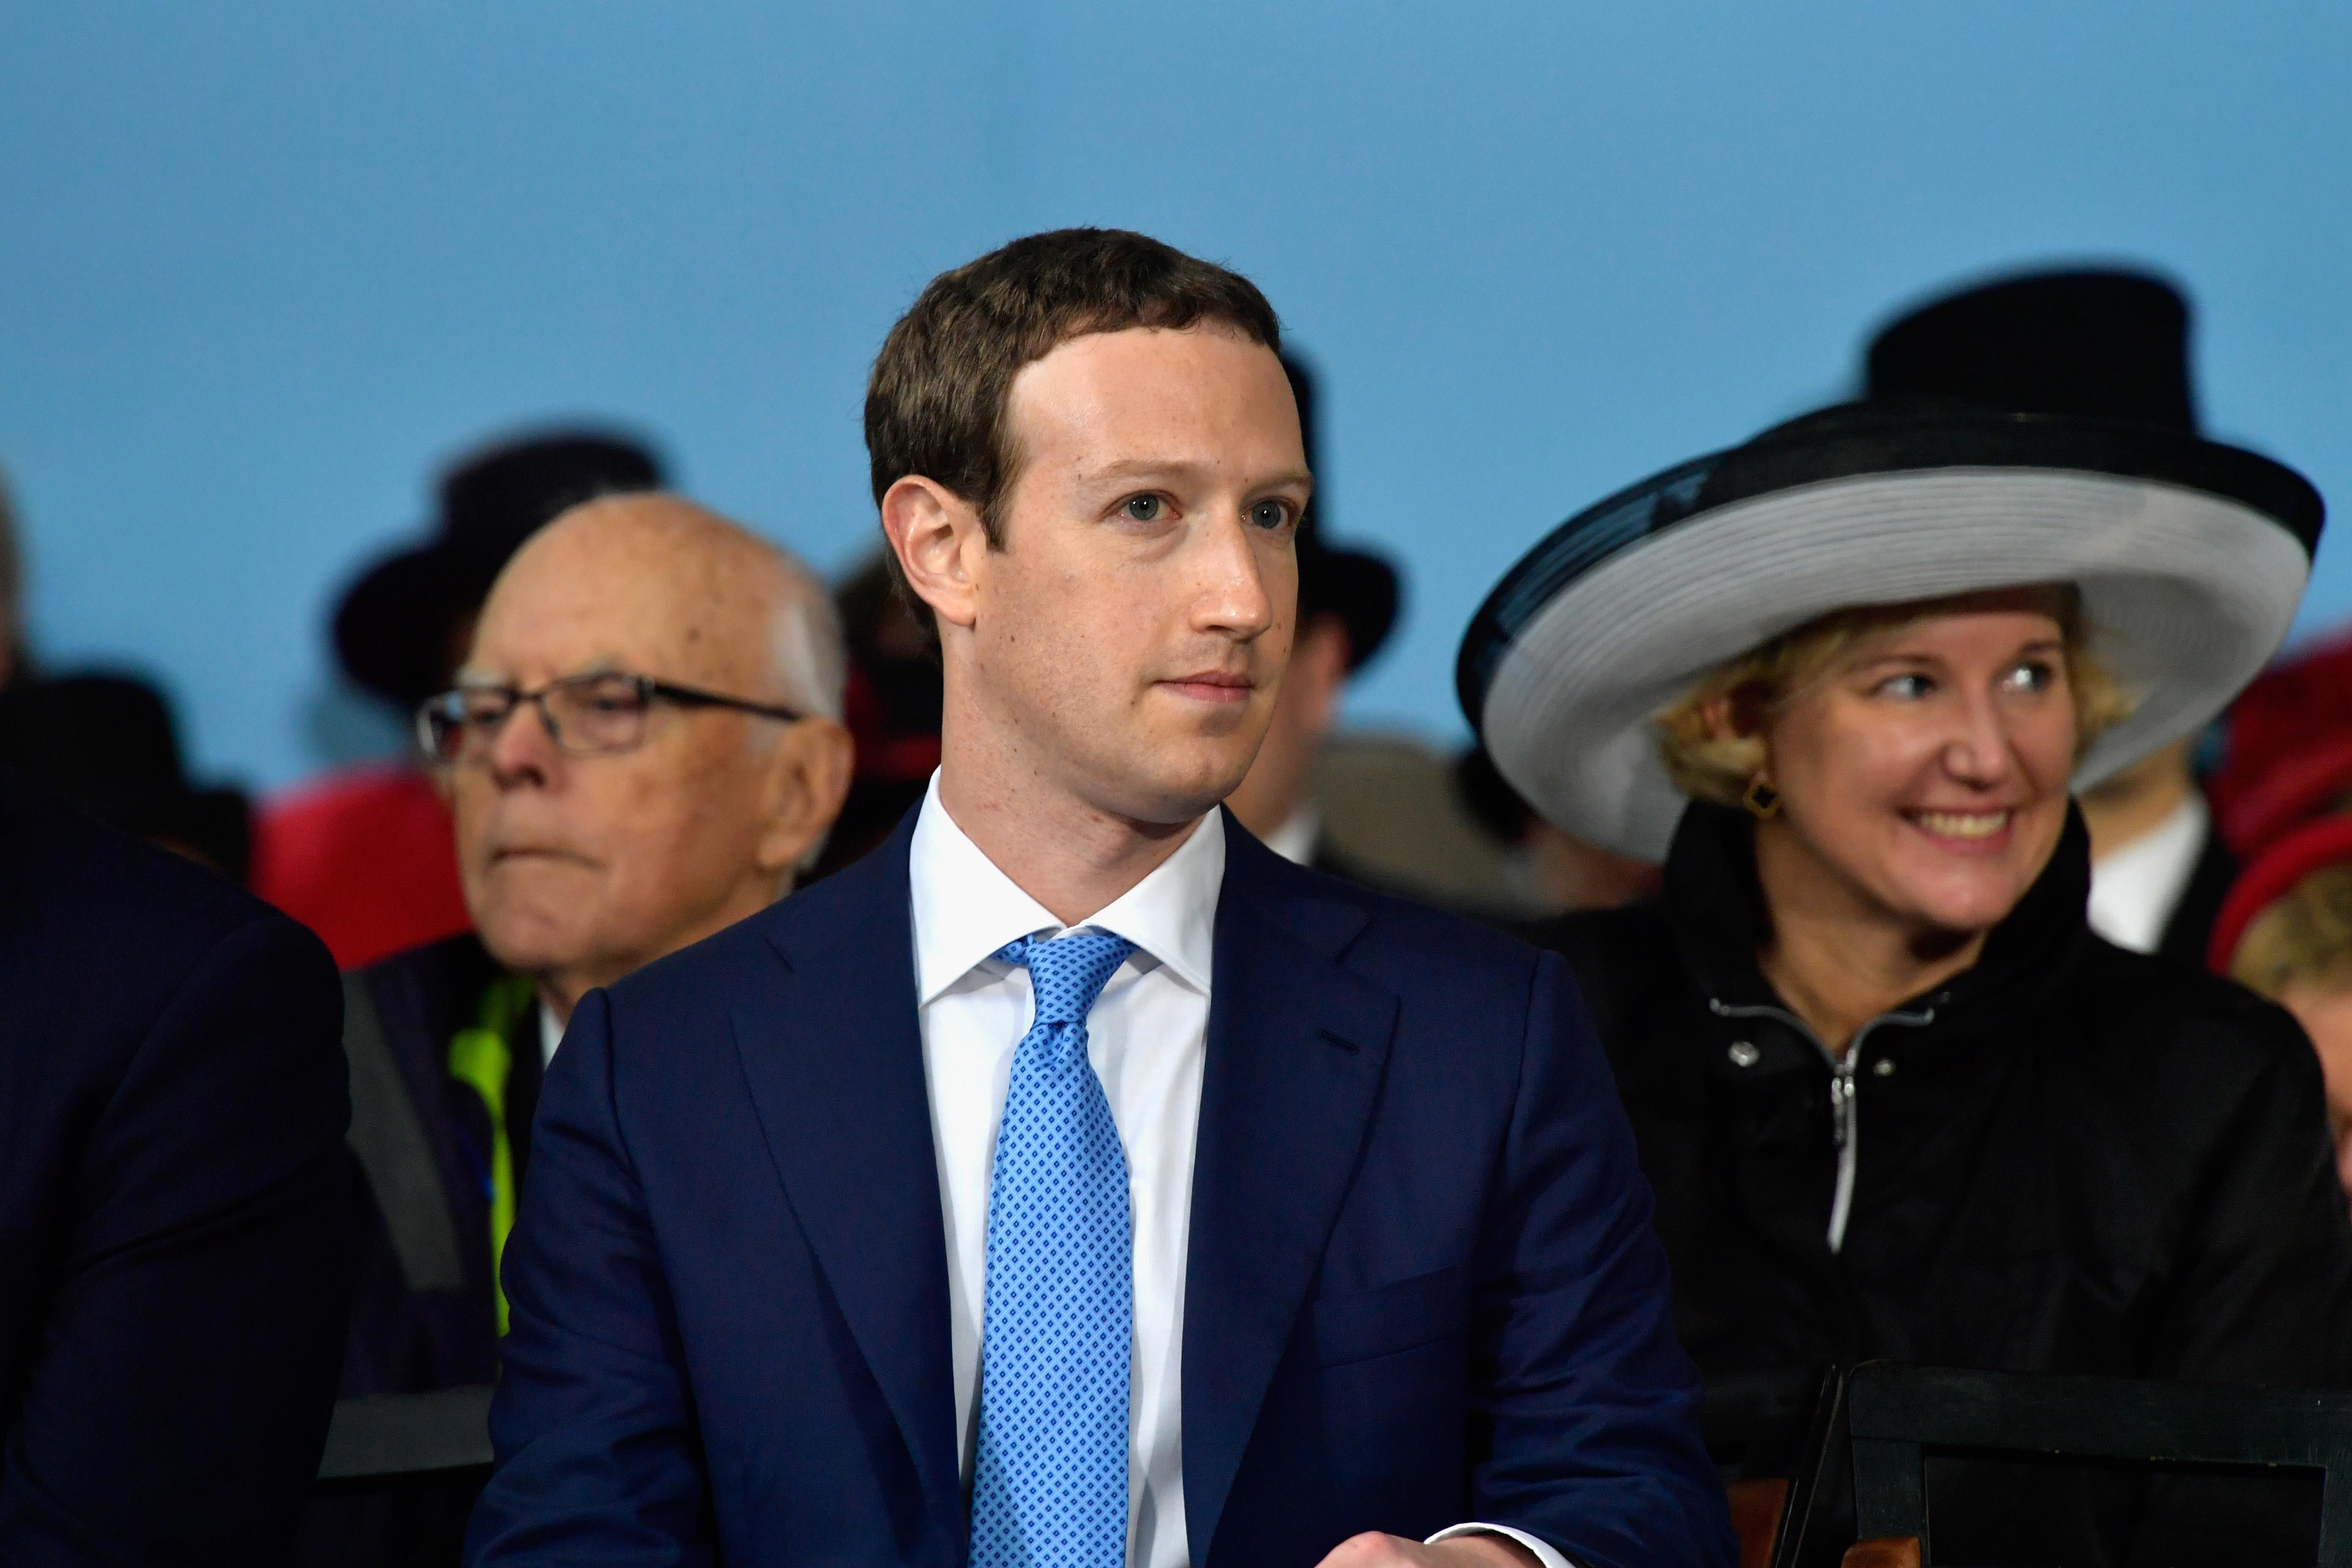 Facebook Founder and CEO Mark Zuckerberg delivers the commencement address at the Alumni Exercises at Harvard on May 25, 2017 in Cambridge, Mass